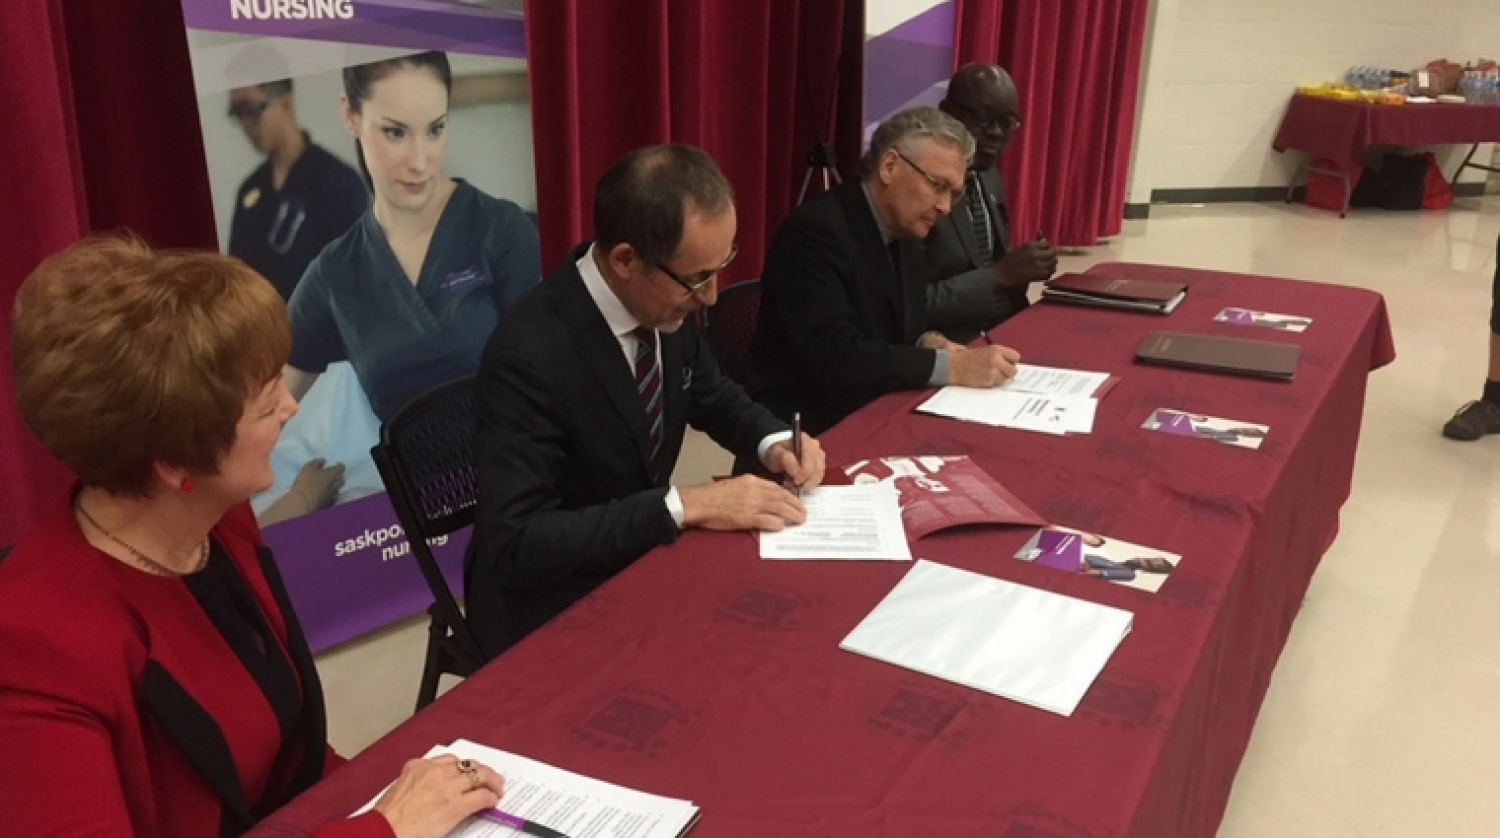 Partnership is launched for the first bilingual practical nursing program in Saskatchewan